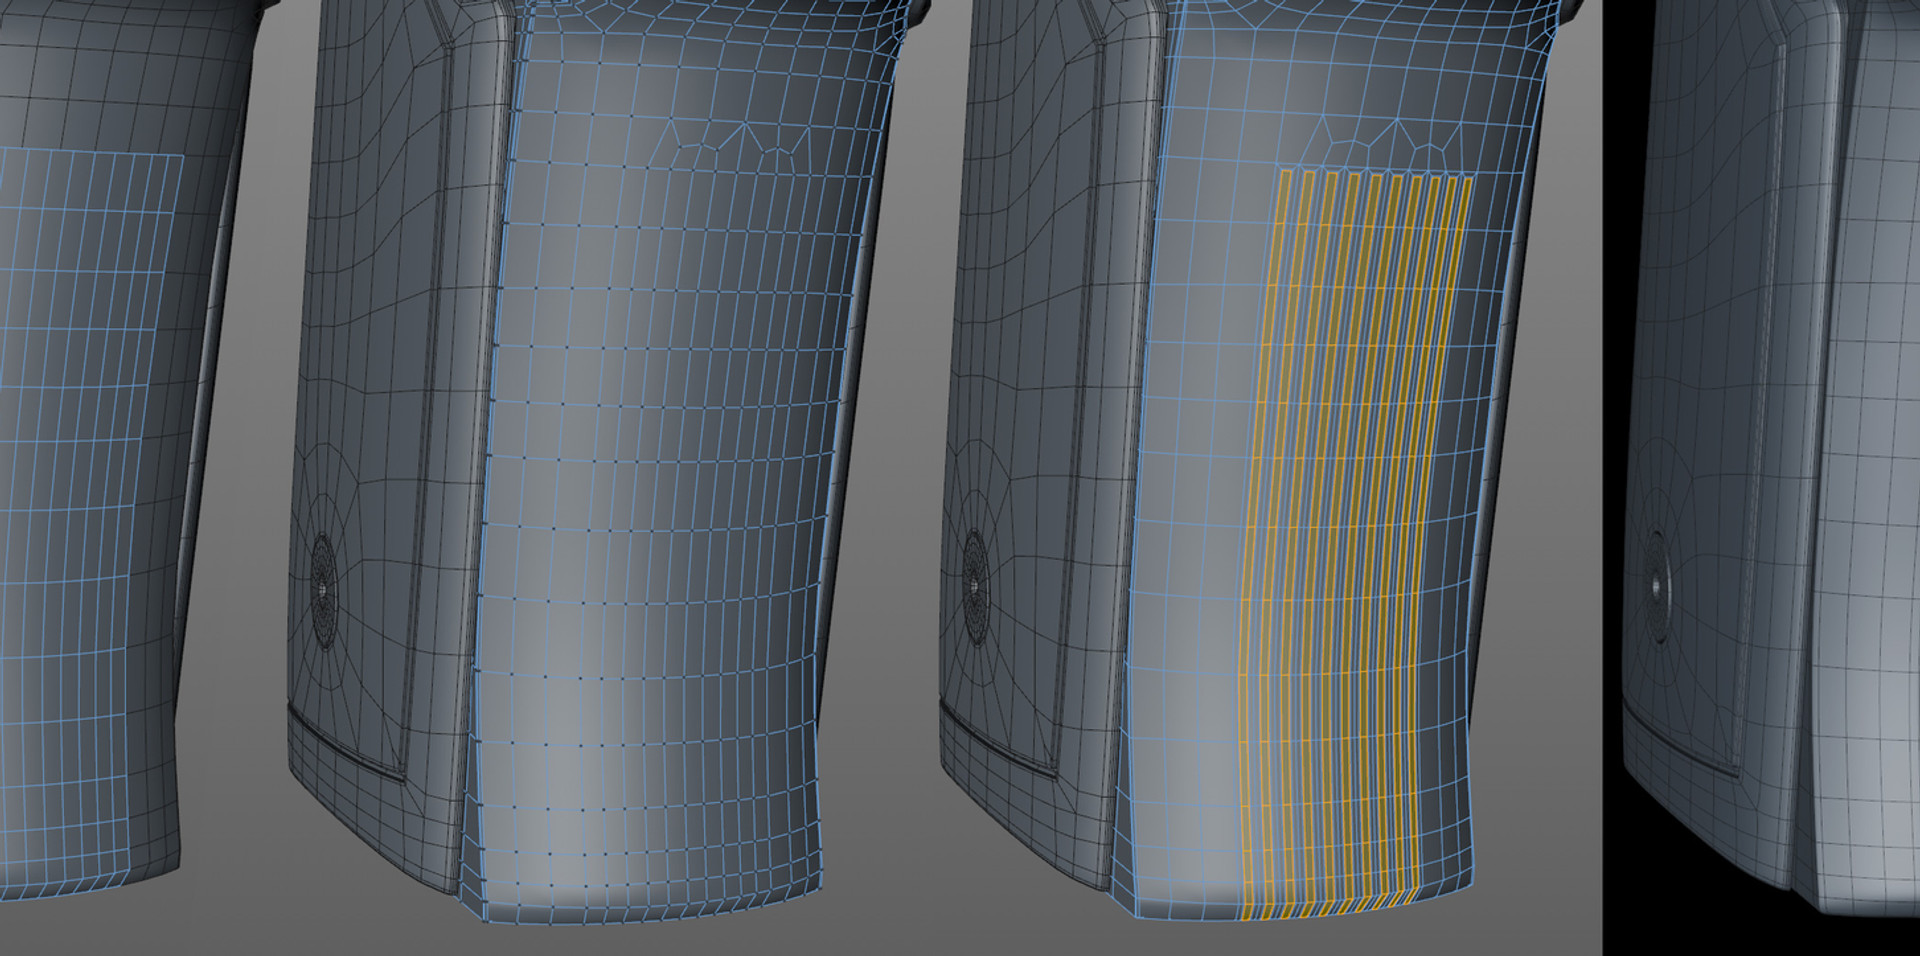 Rather than subdividing the entire frame to get more rows for this detail, I decided to stitch it in using some loops.